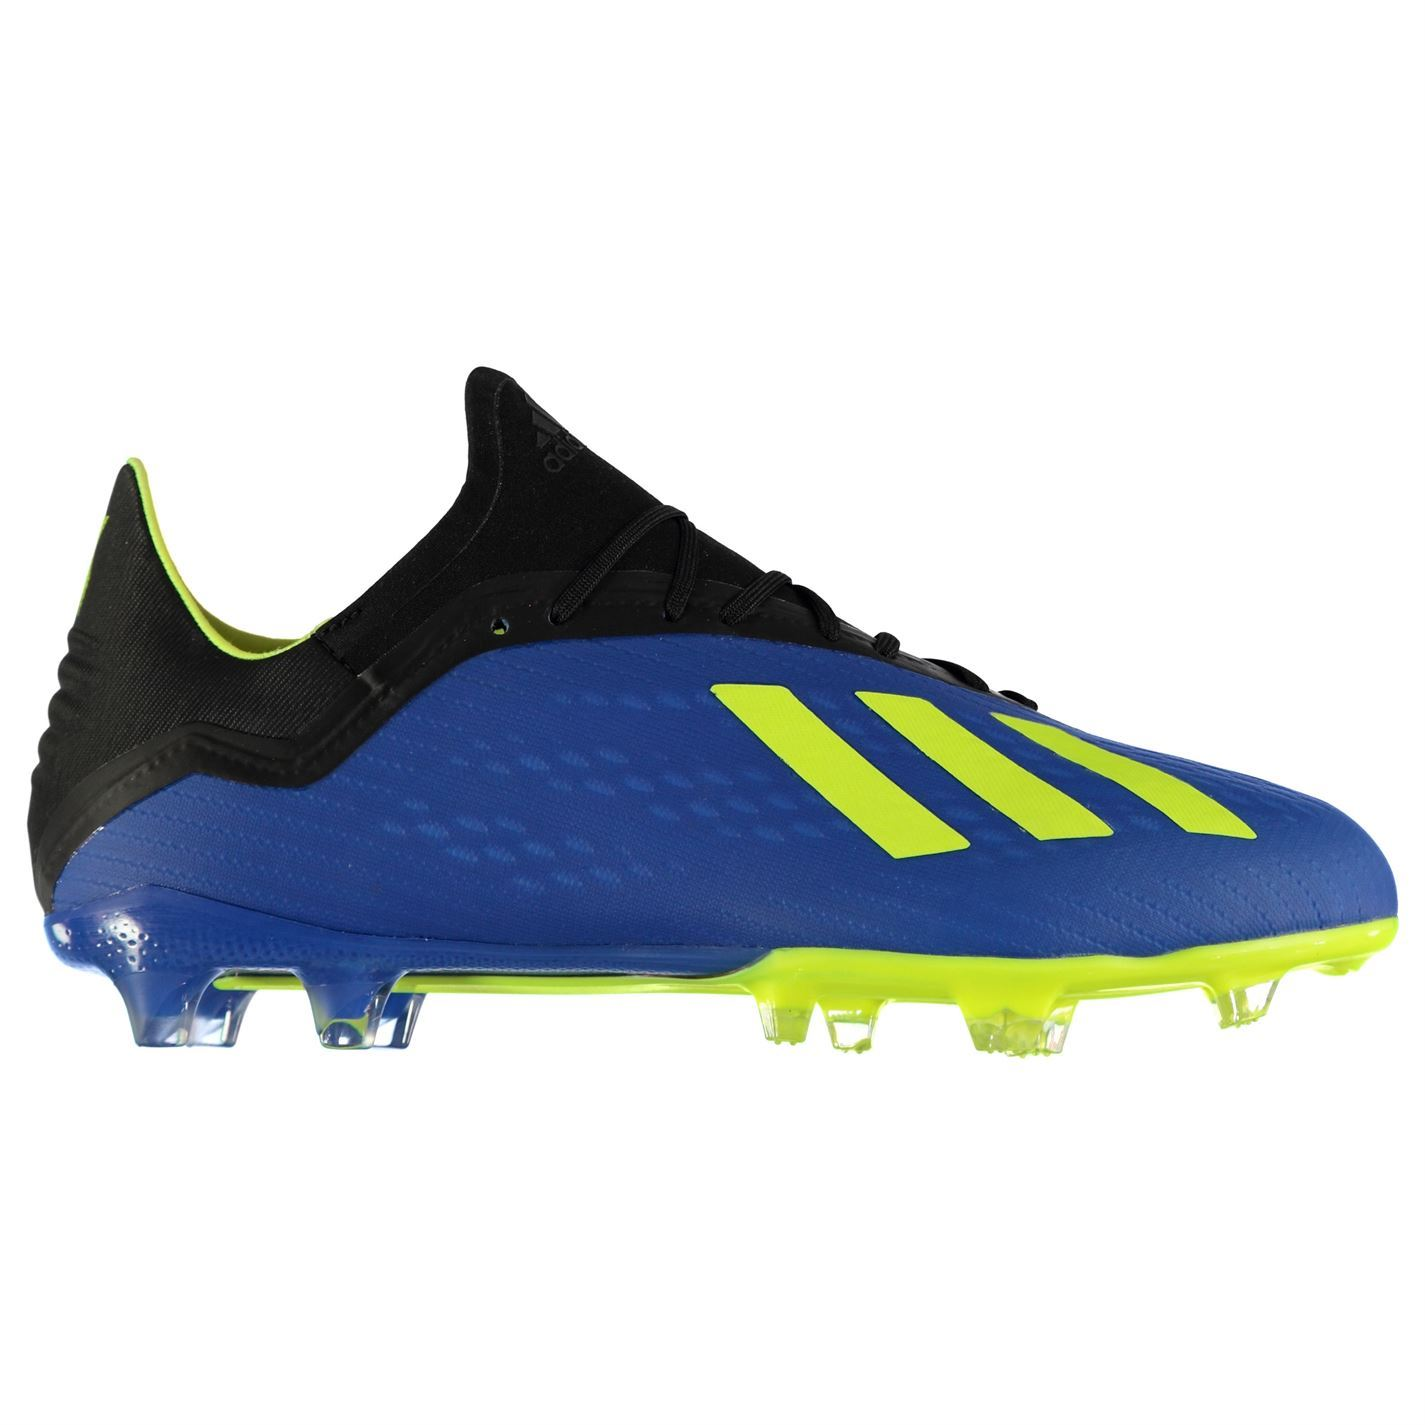 aa5645066e6 adidas X 18.2 FG Firm Ground Football Boots Mens Blue Soccer Shoes Cleats